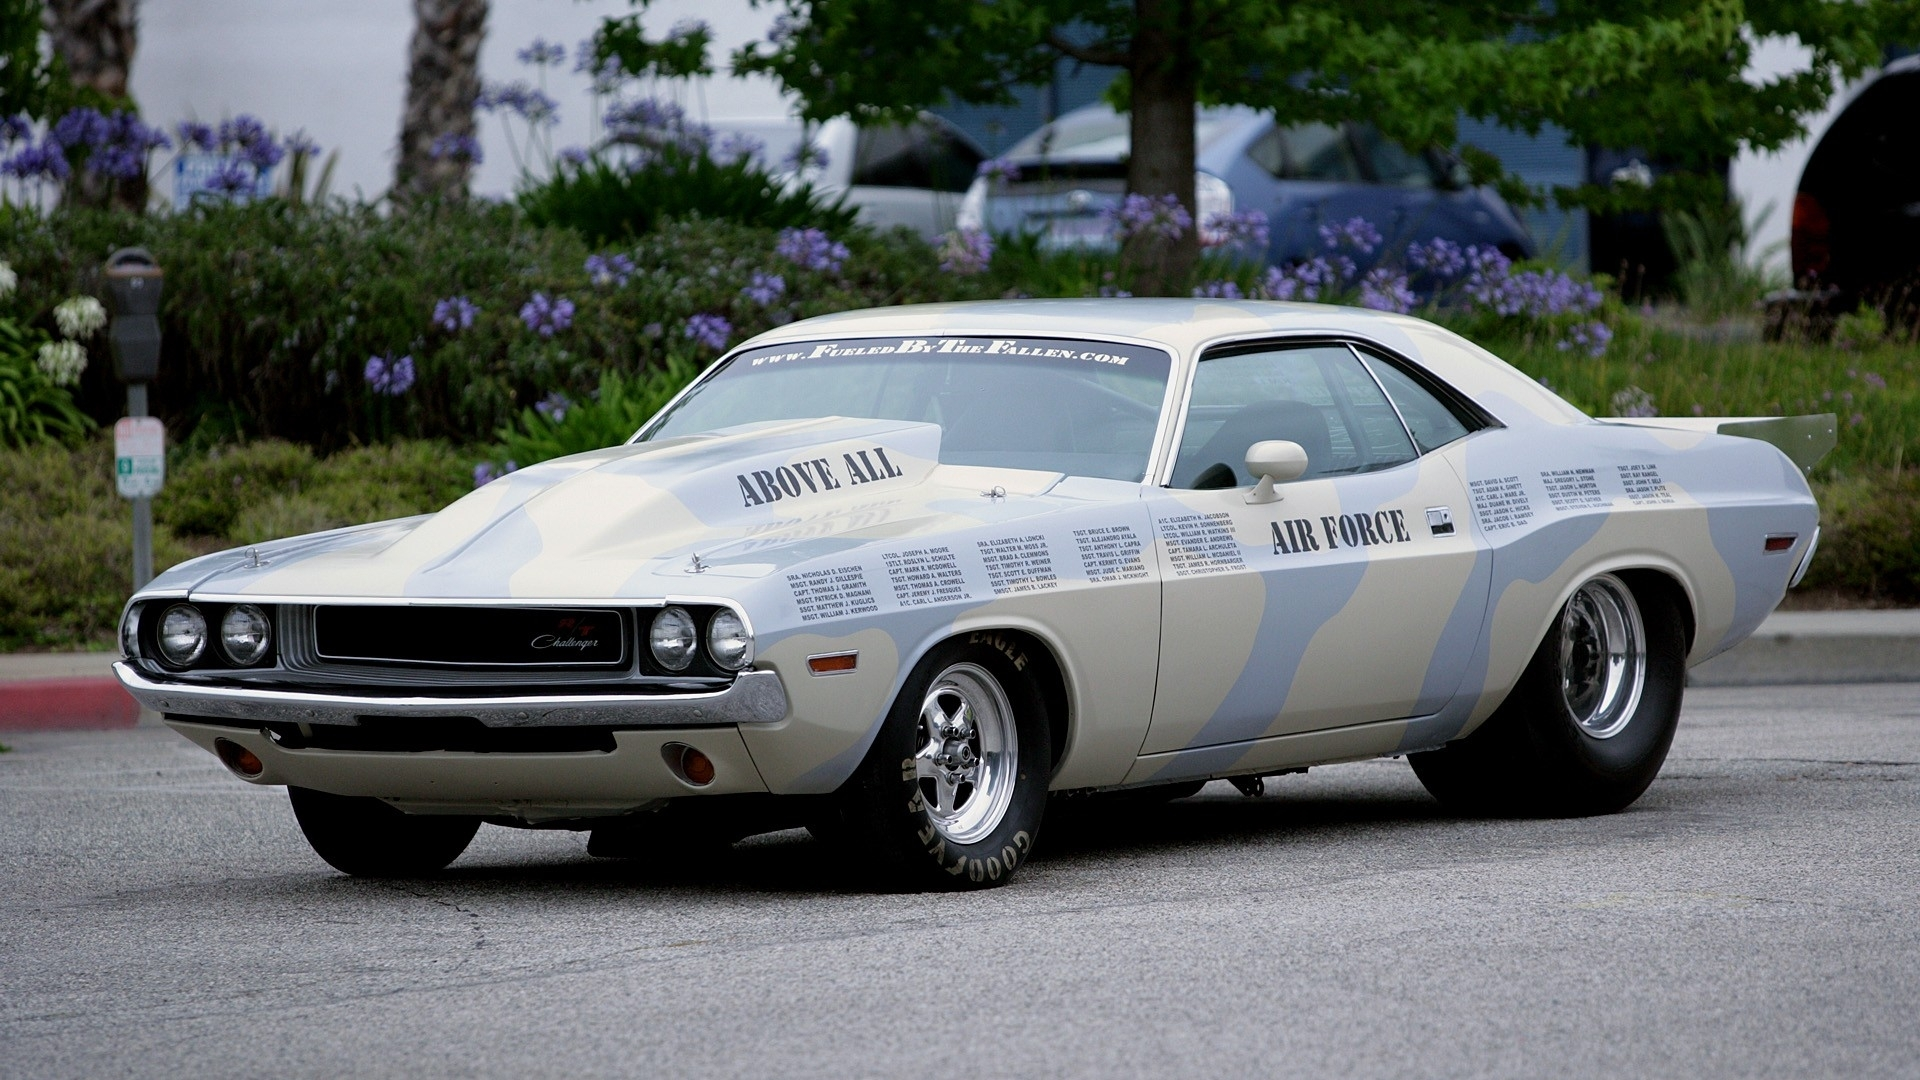 Dodge challenger muscle hot rod vehicles cars wheels drag retro old ...